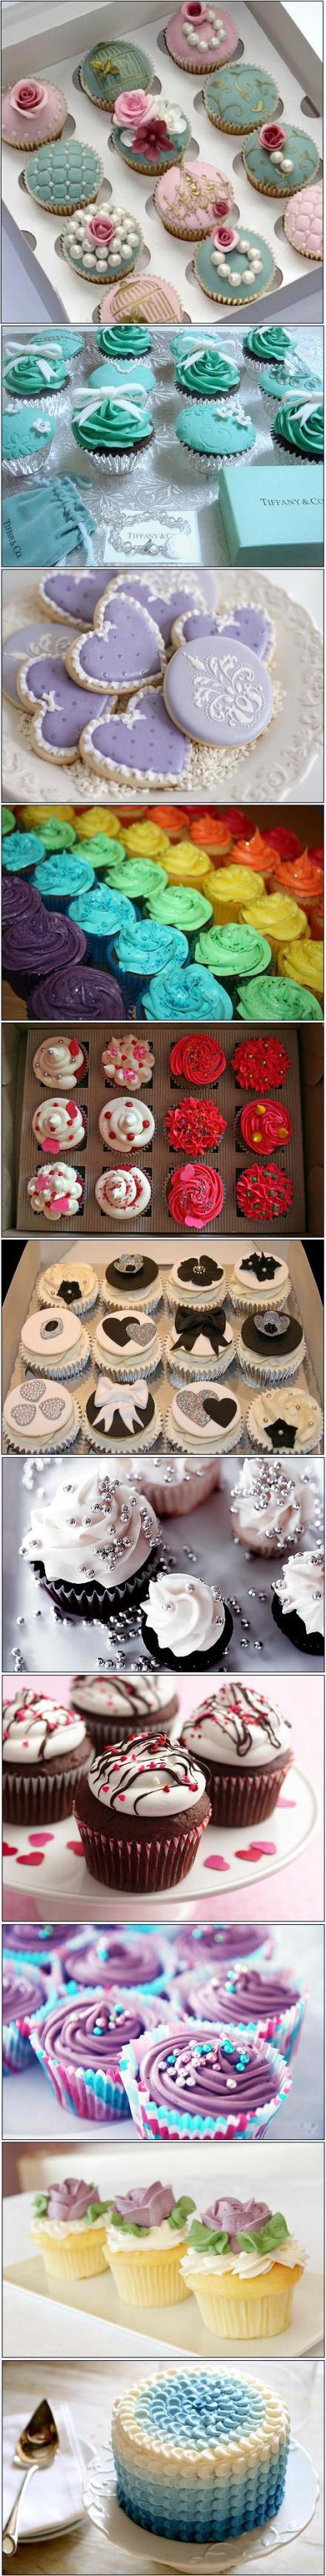 cup cakes !!!!: Beautiful Cupcakes, Cake Cockies Cupcakes, Cakes And ...